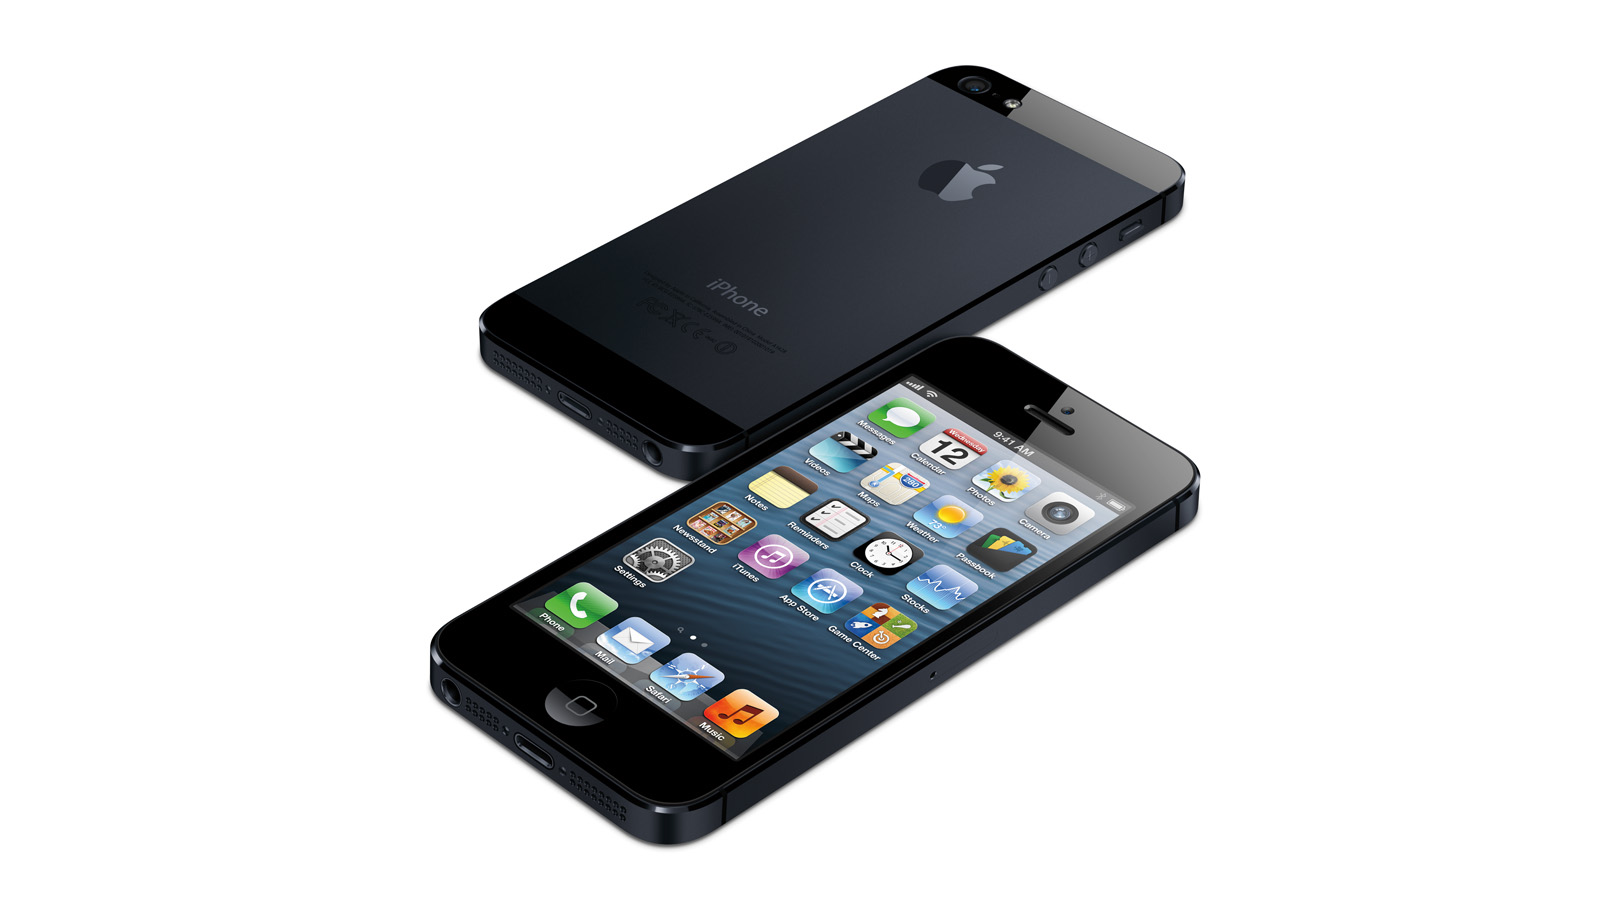 Click here to read You Can Get an iPhone 5 for $150